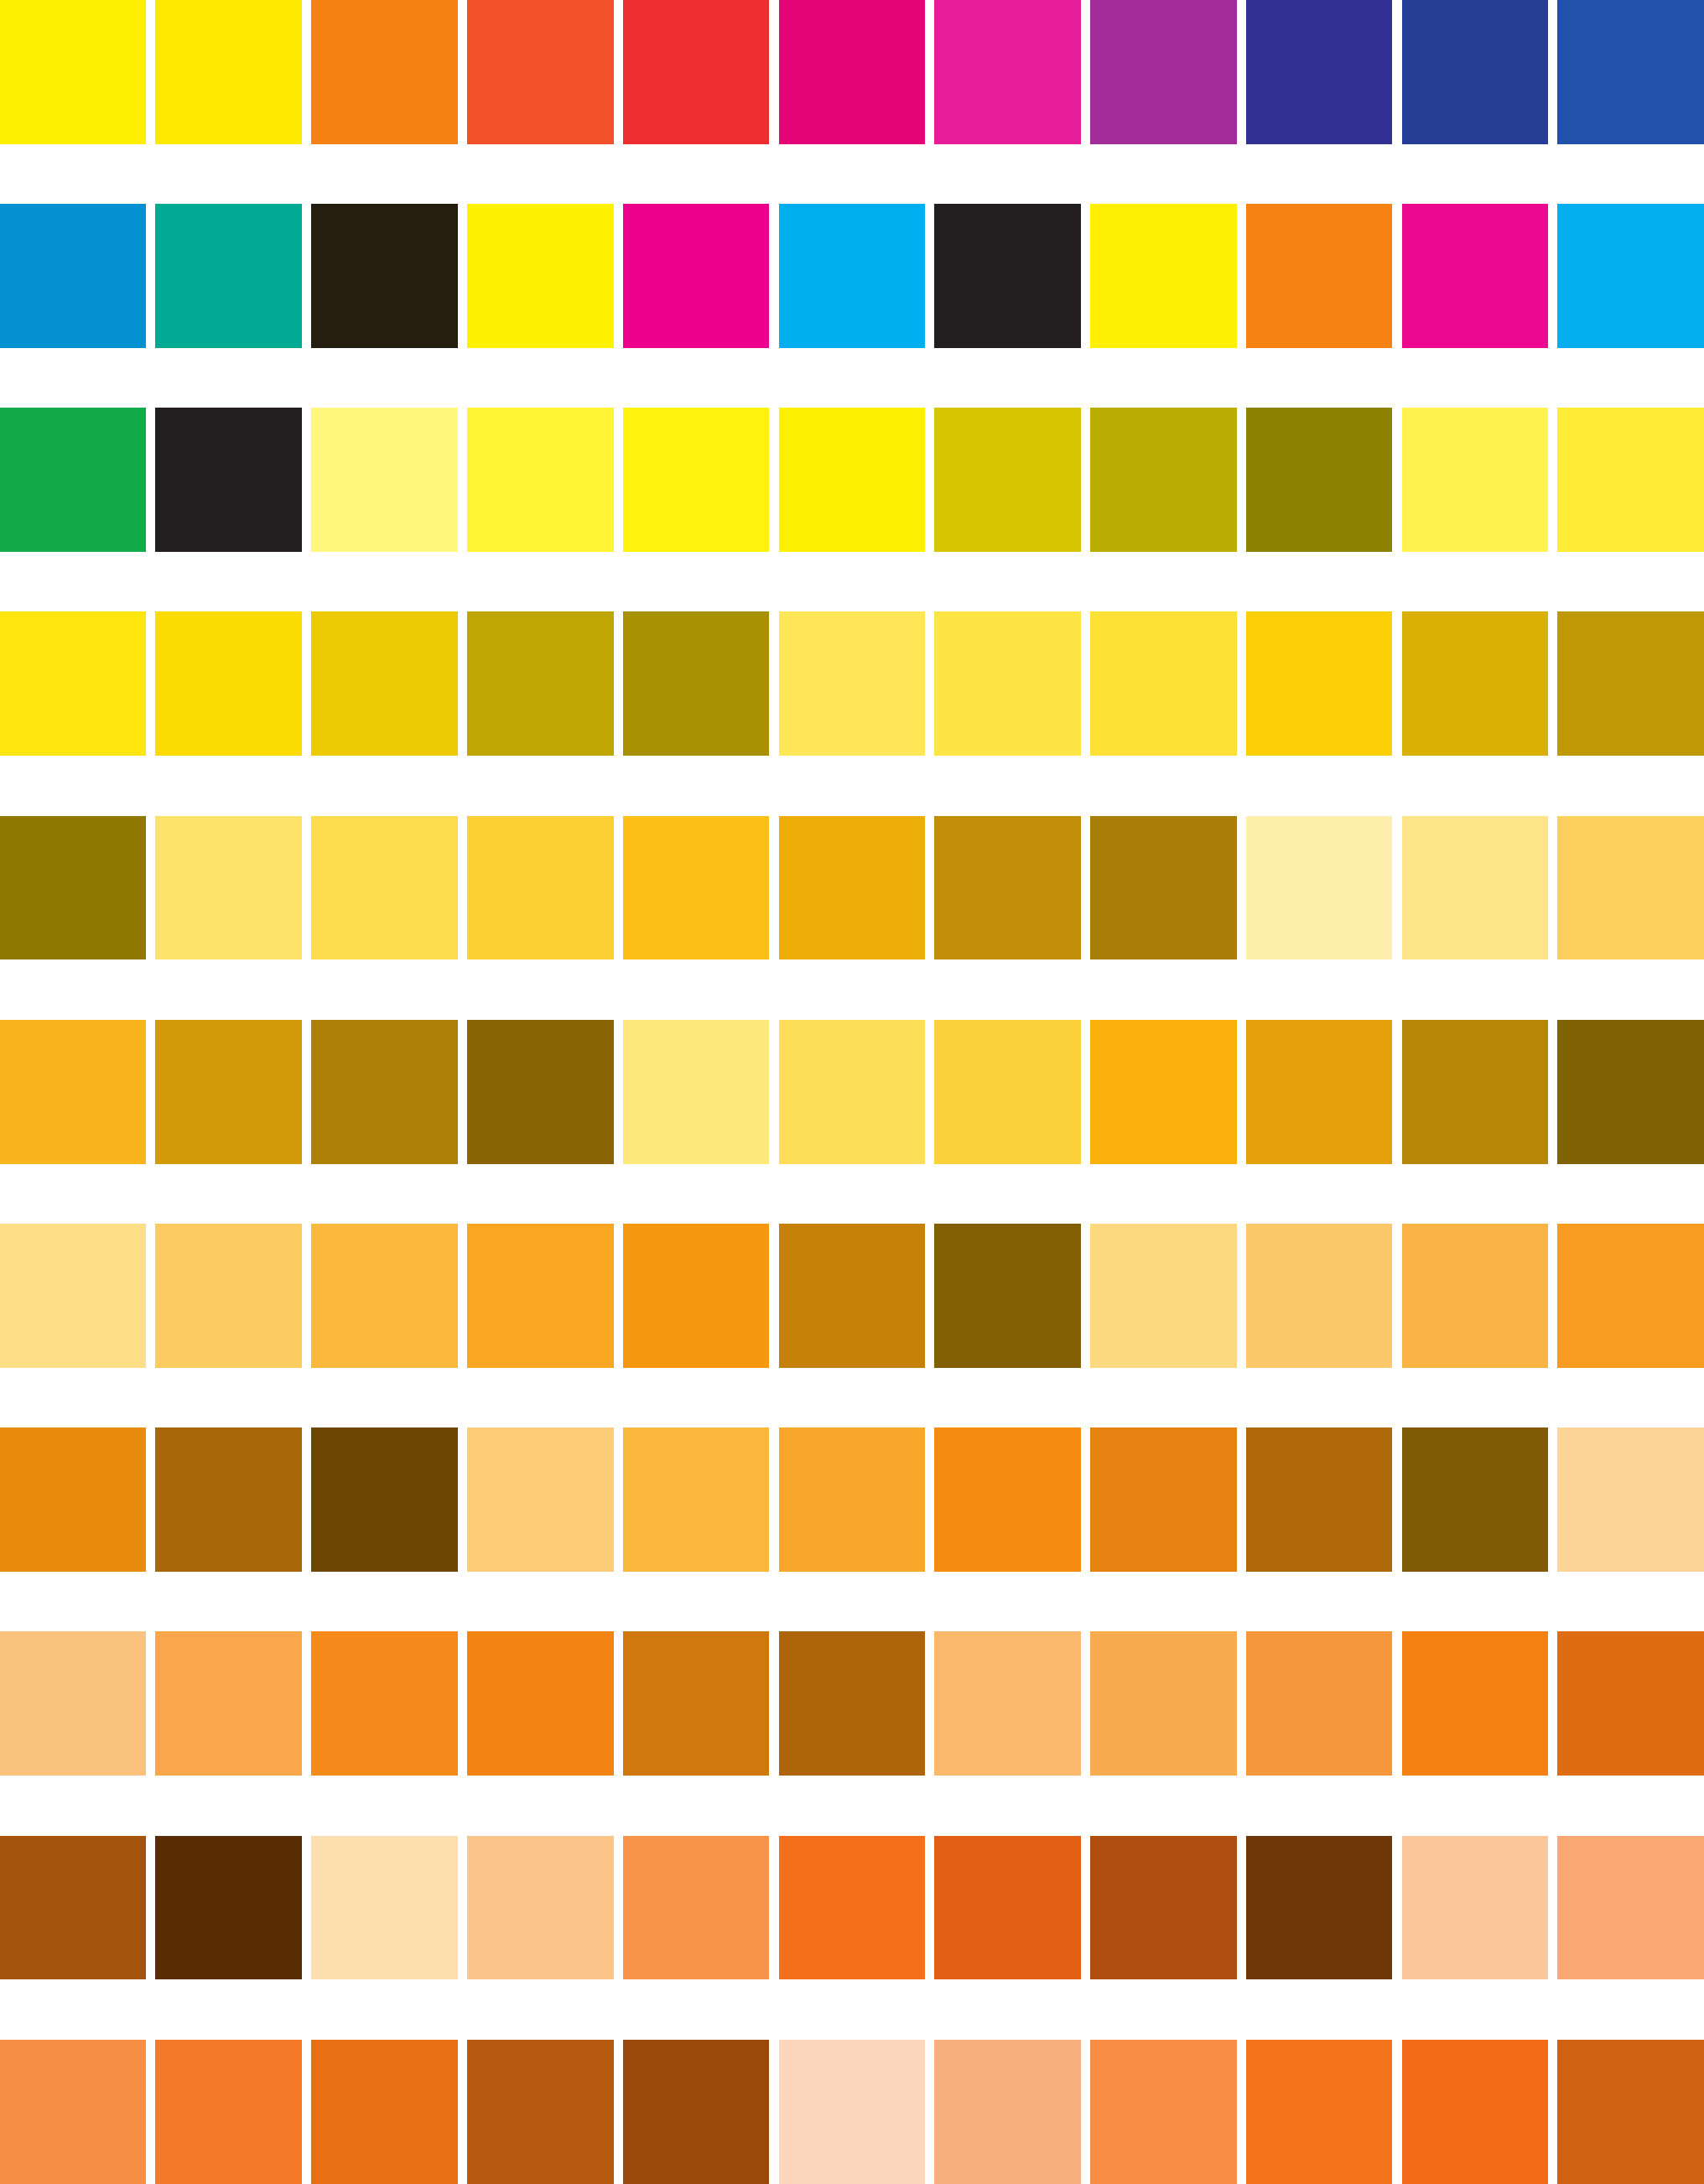 pantone solid coated chart free download